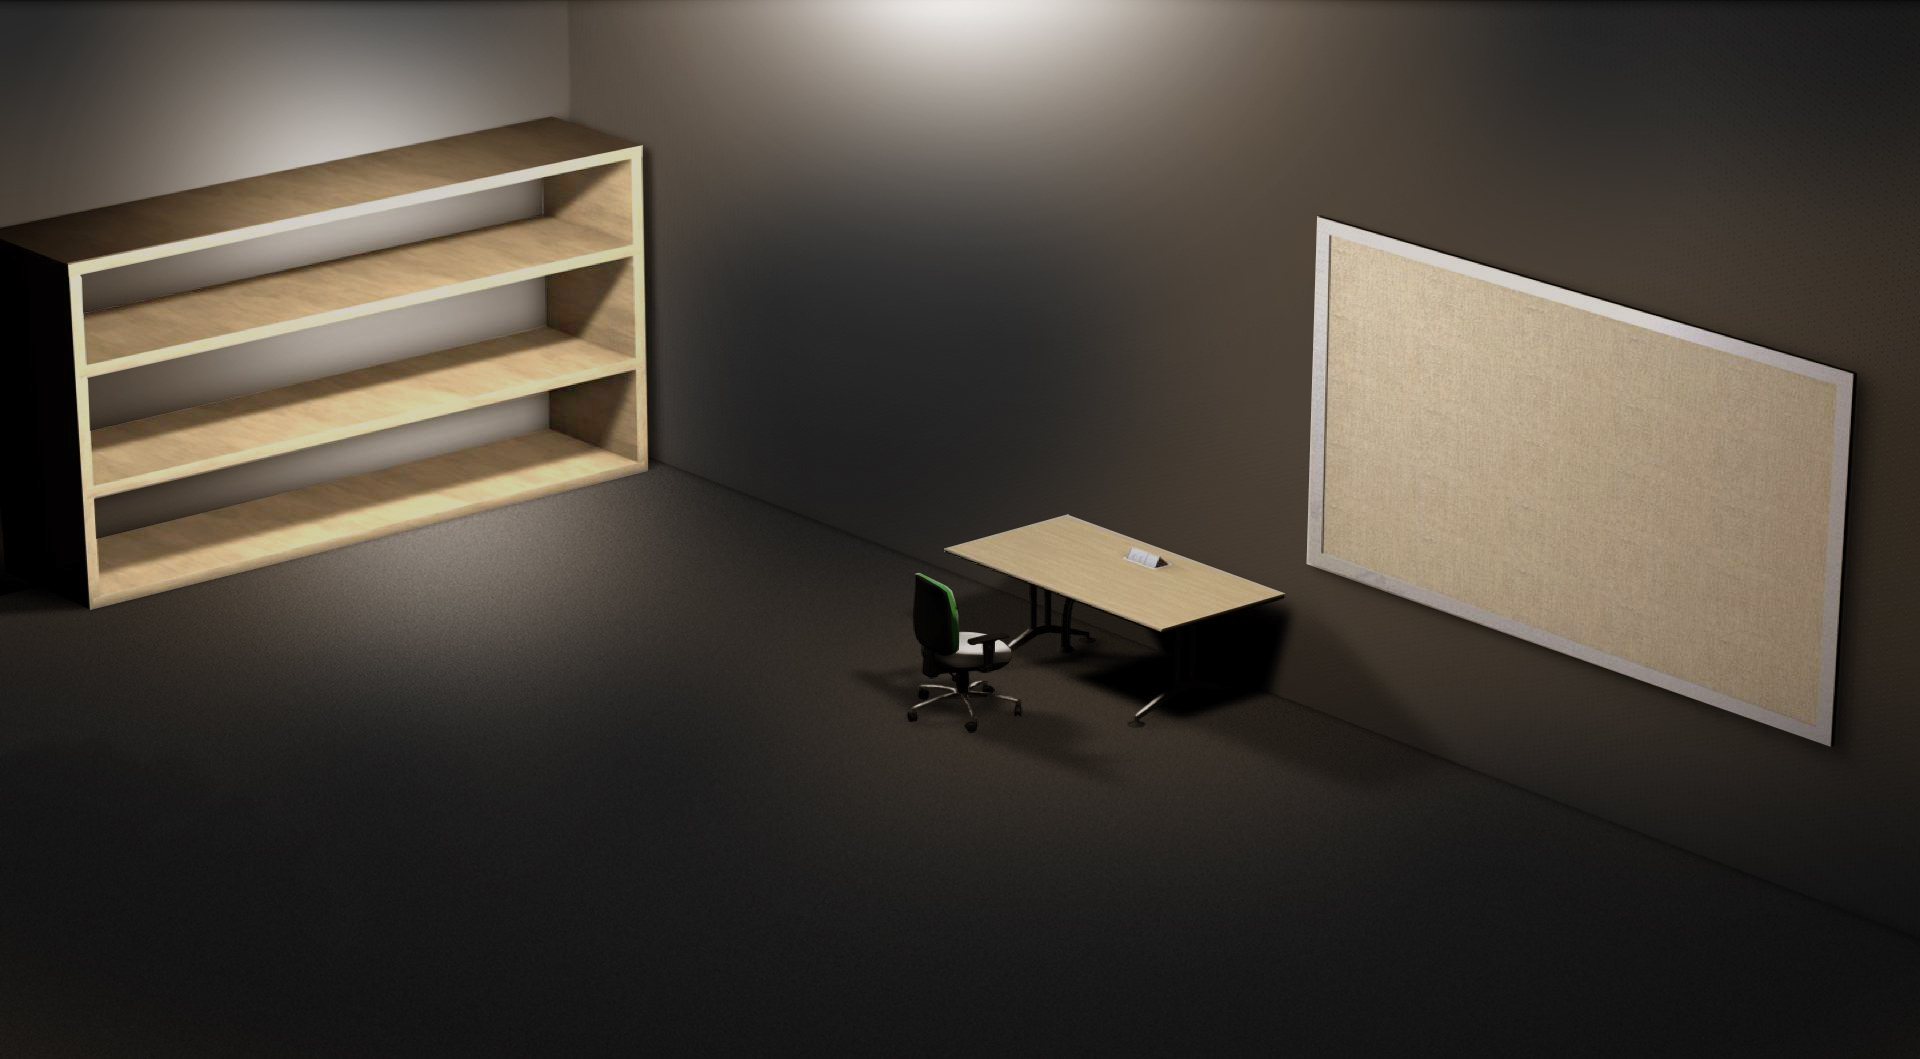 Office Organizing Ideas Empty Office Desktop Wallpaper Wallpapersafari